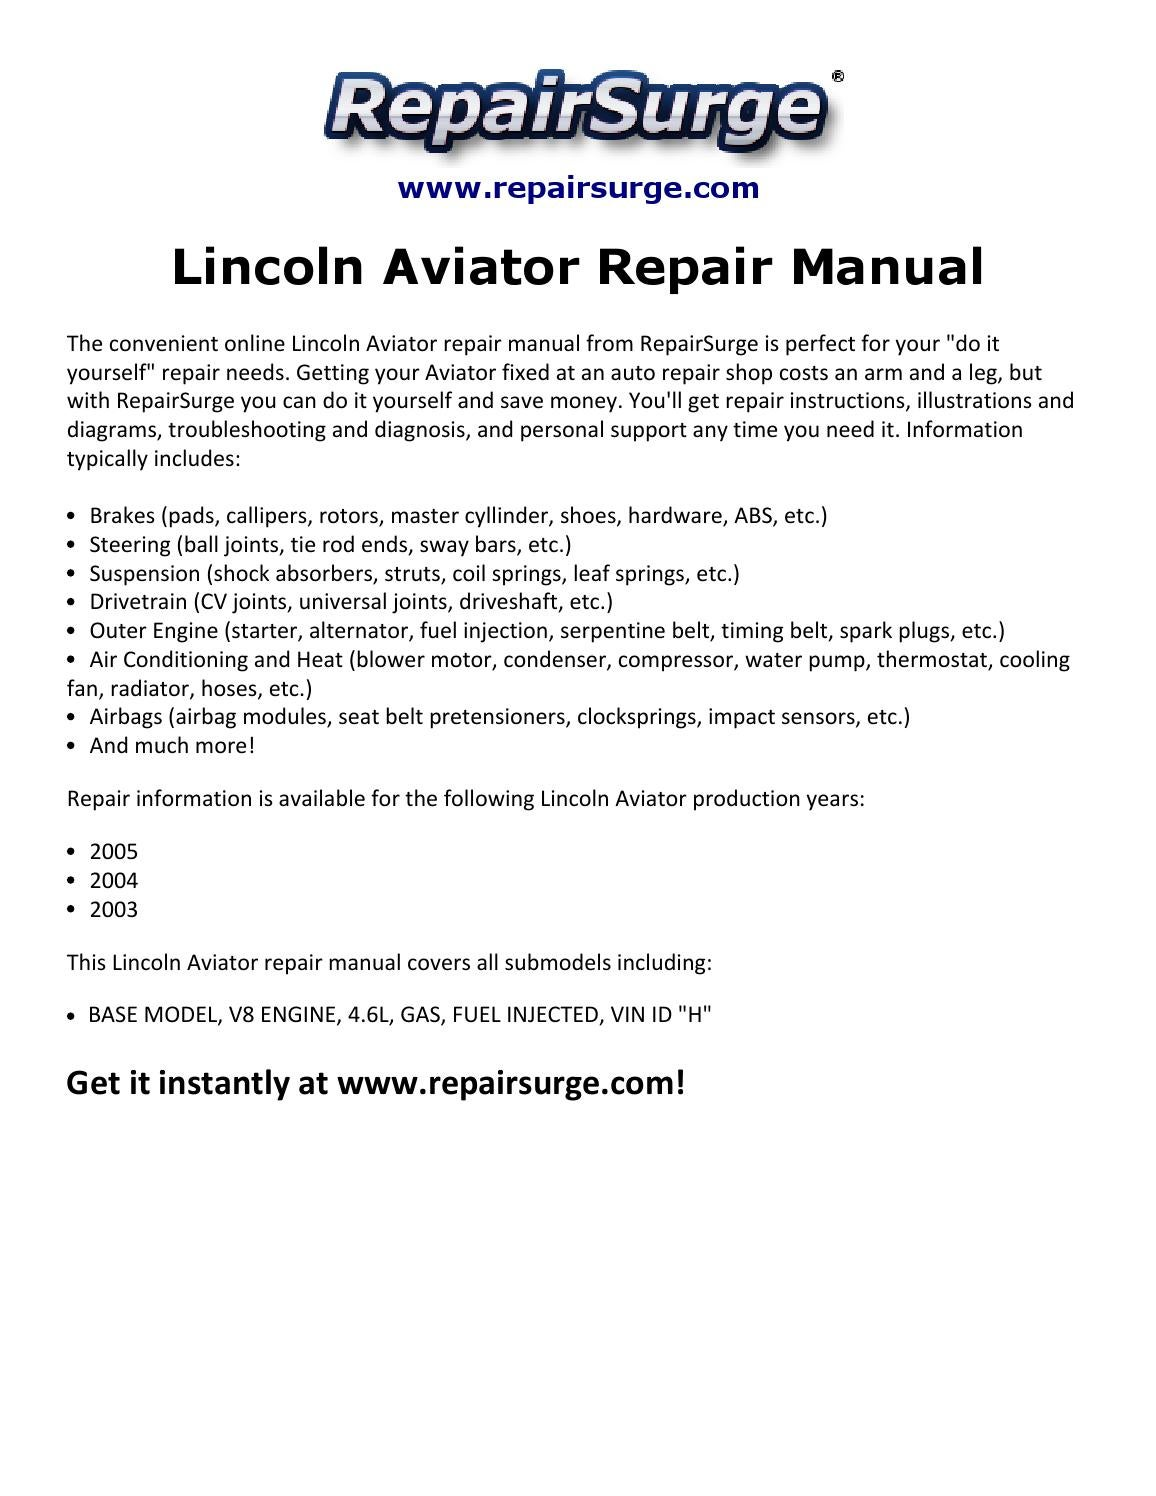 Lincoln aviator repair manual 2003 2005 by kevin green issuu – Lincoln Aviator 2004 Engine Diagram